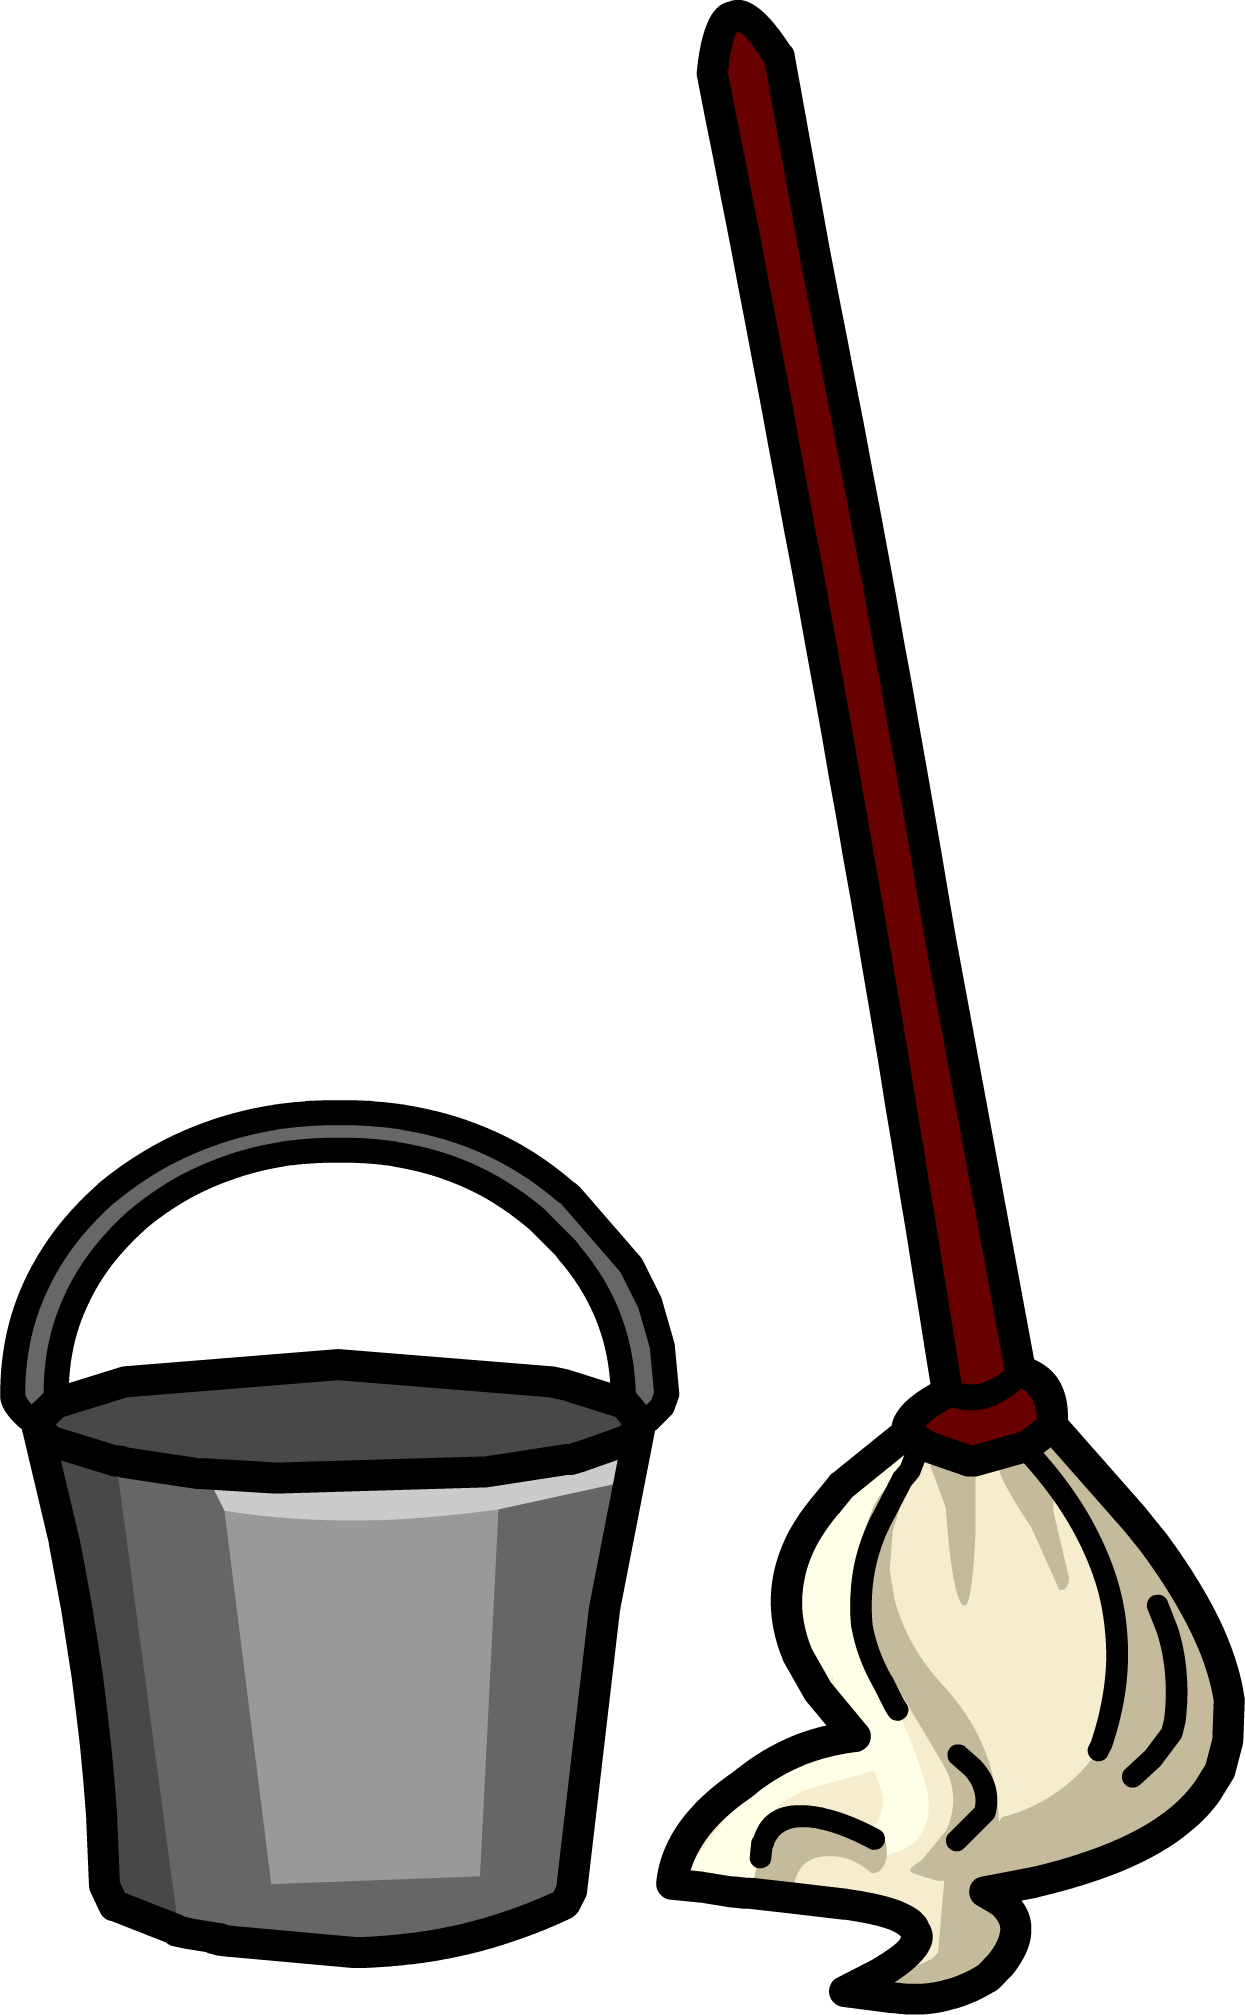 Mop amp; Bucket  Club Penguin Wiki  The free, editable encyclopedia